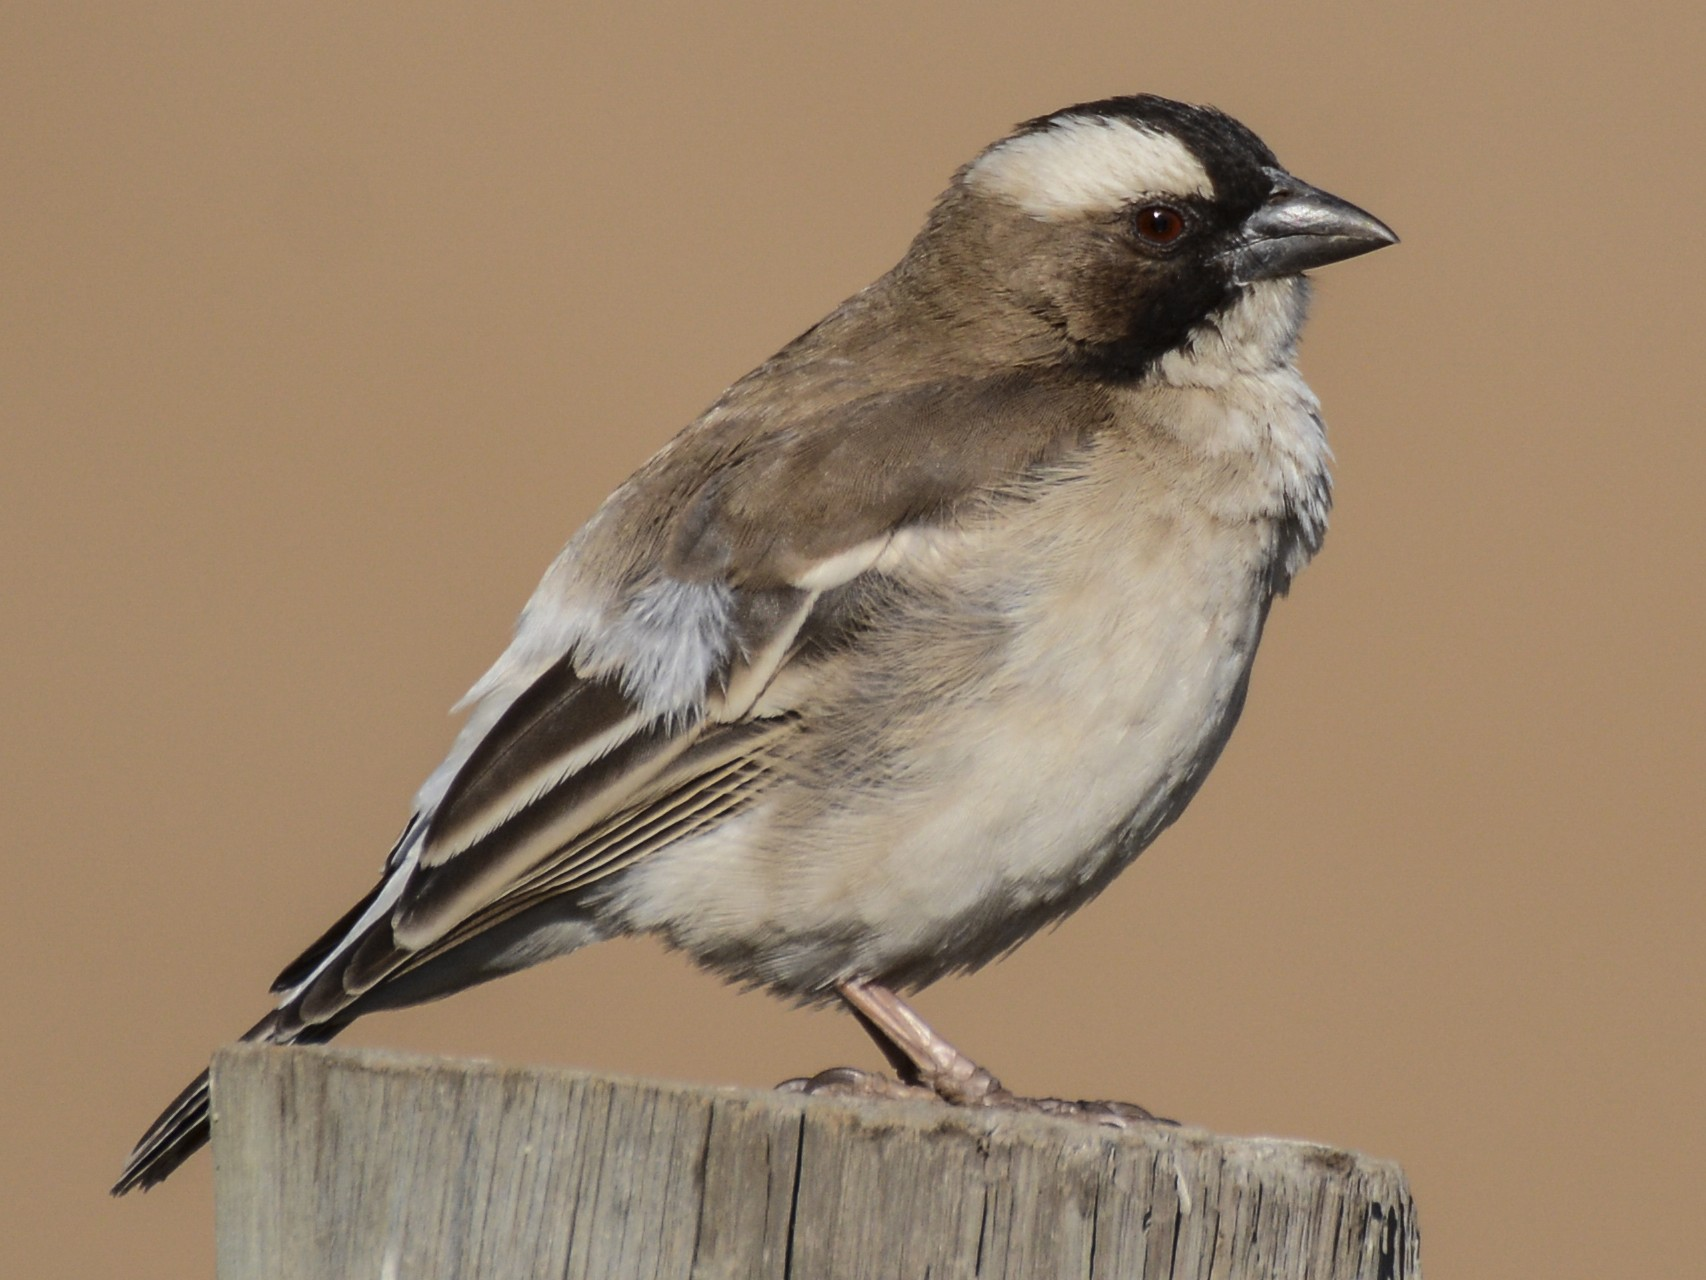 White-browed Sparrow-Weaver - Patrick Maurice